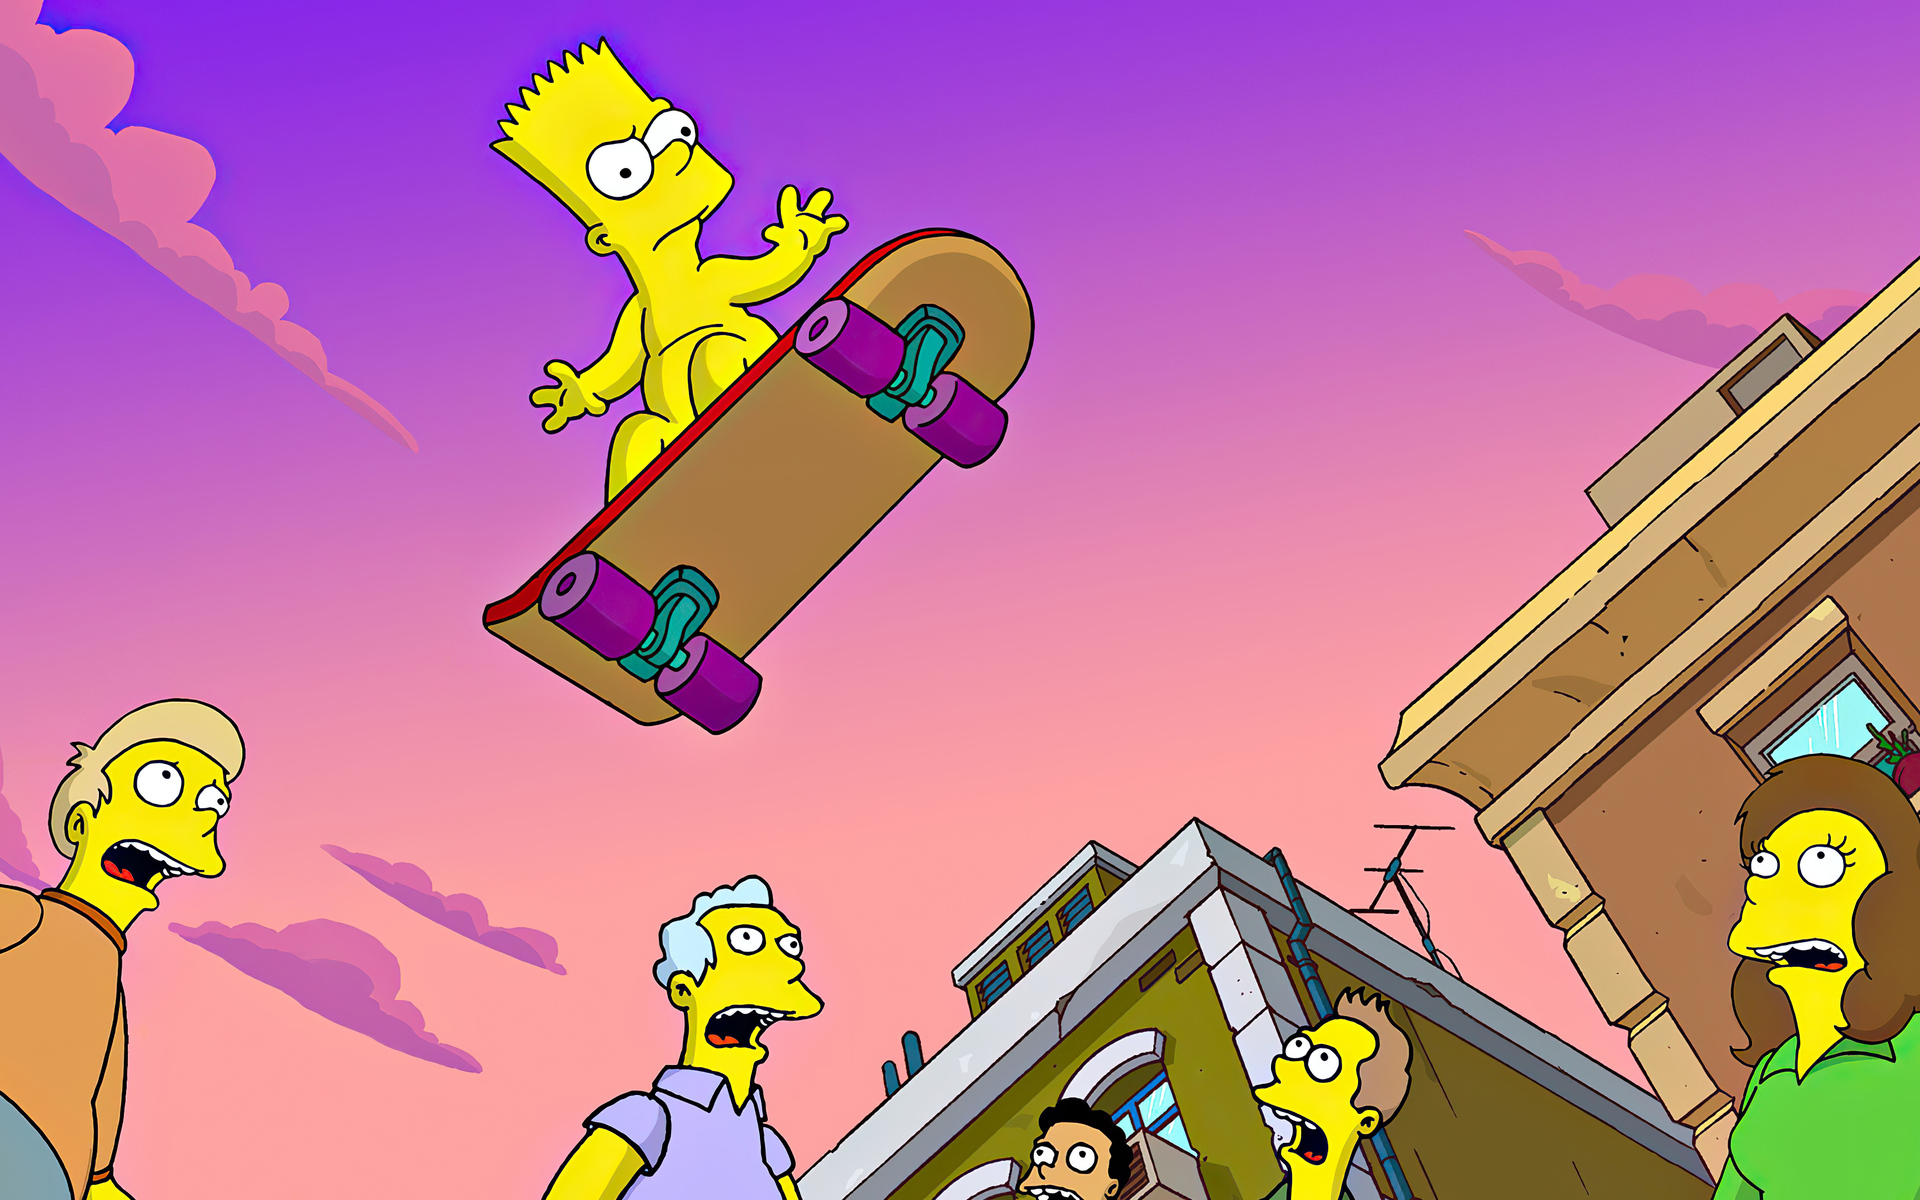 bart-simpsons-4k-kv.jpg